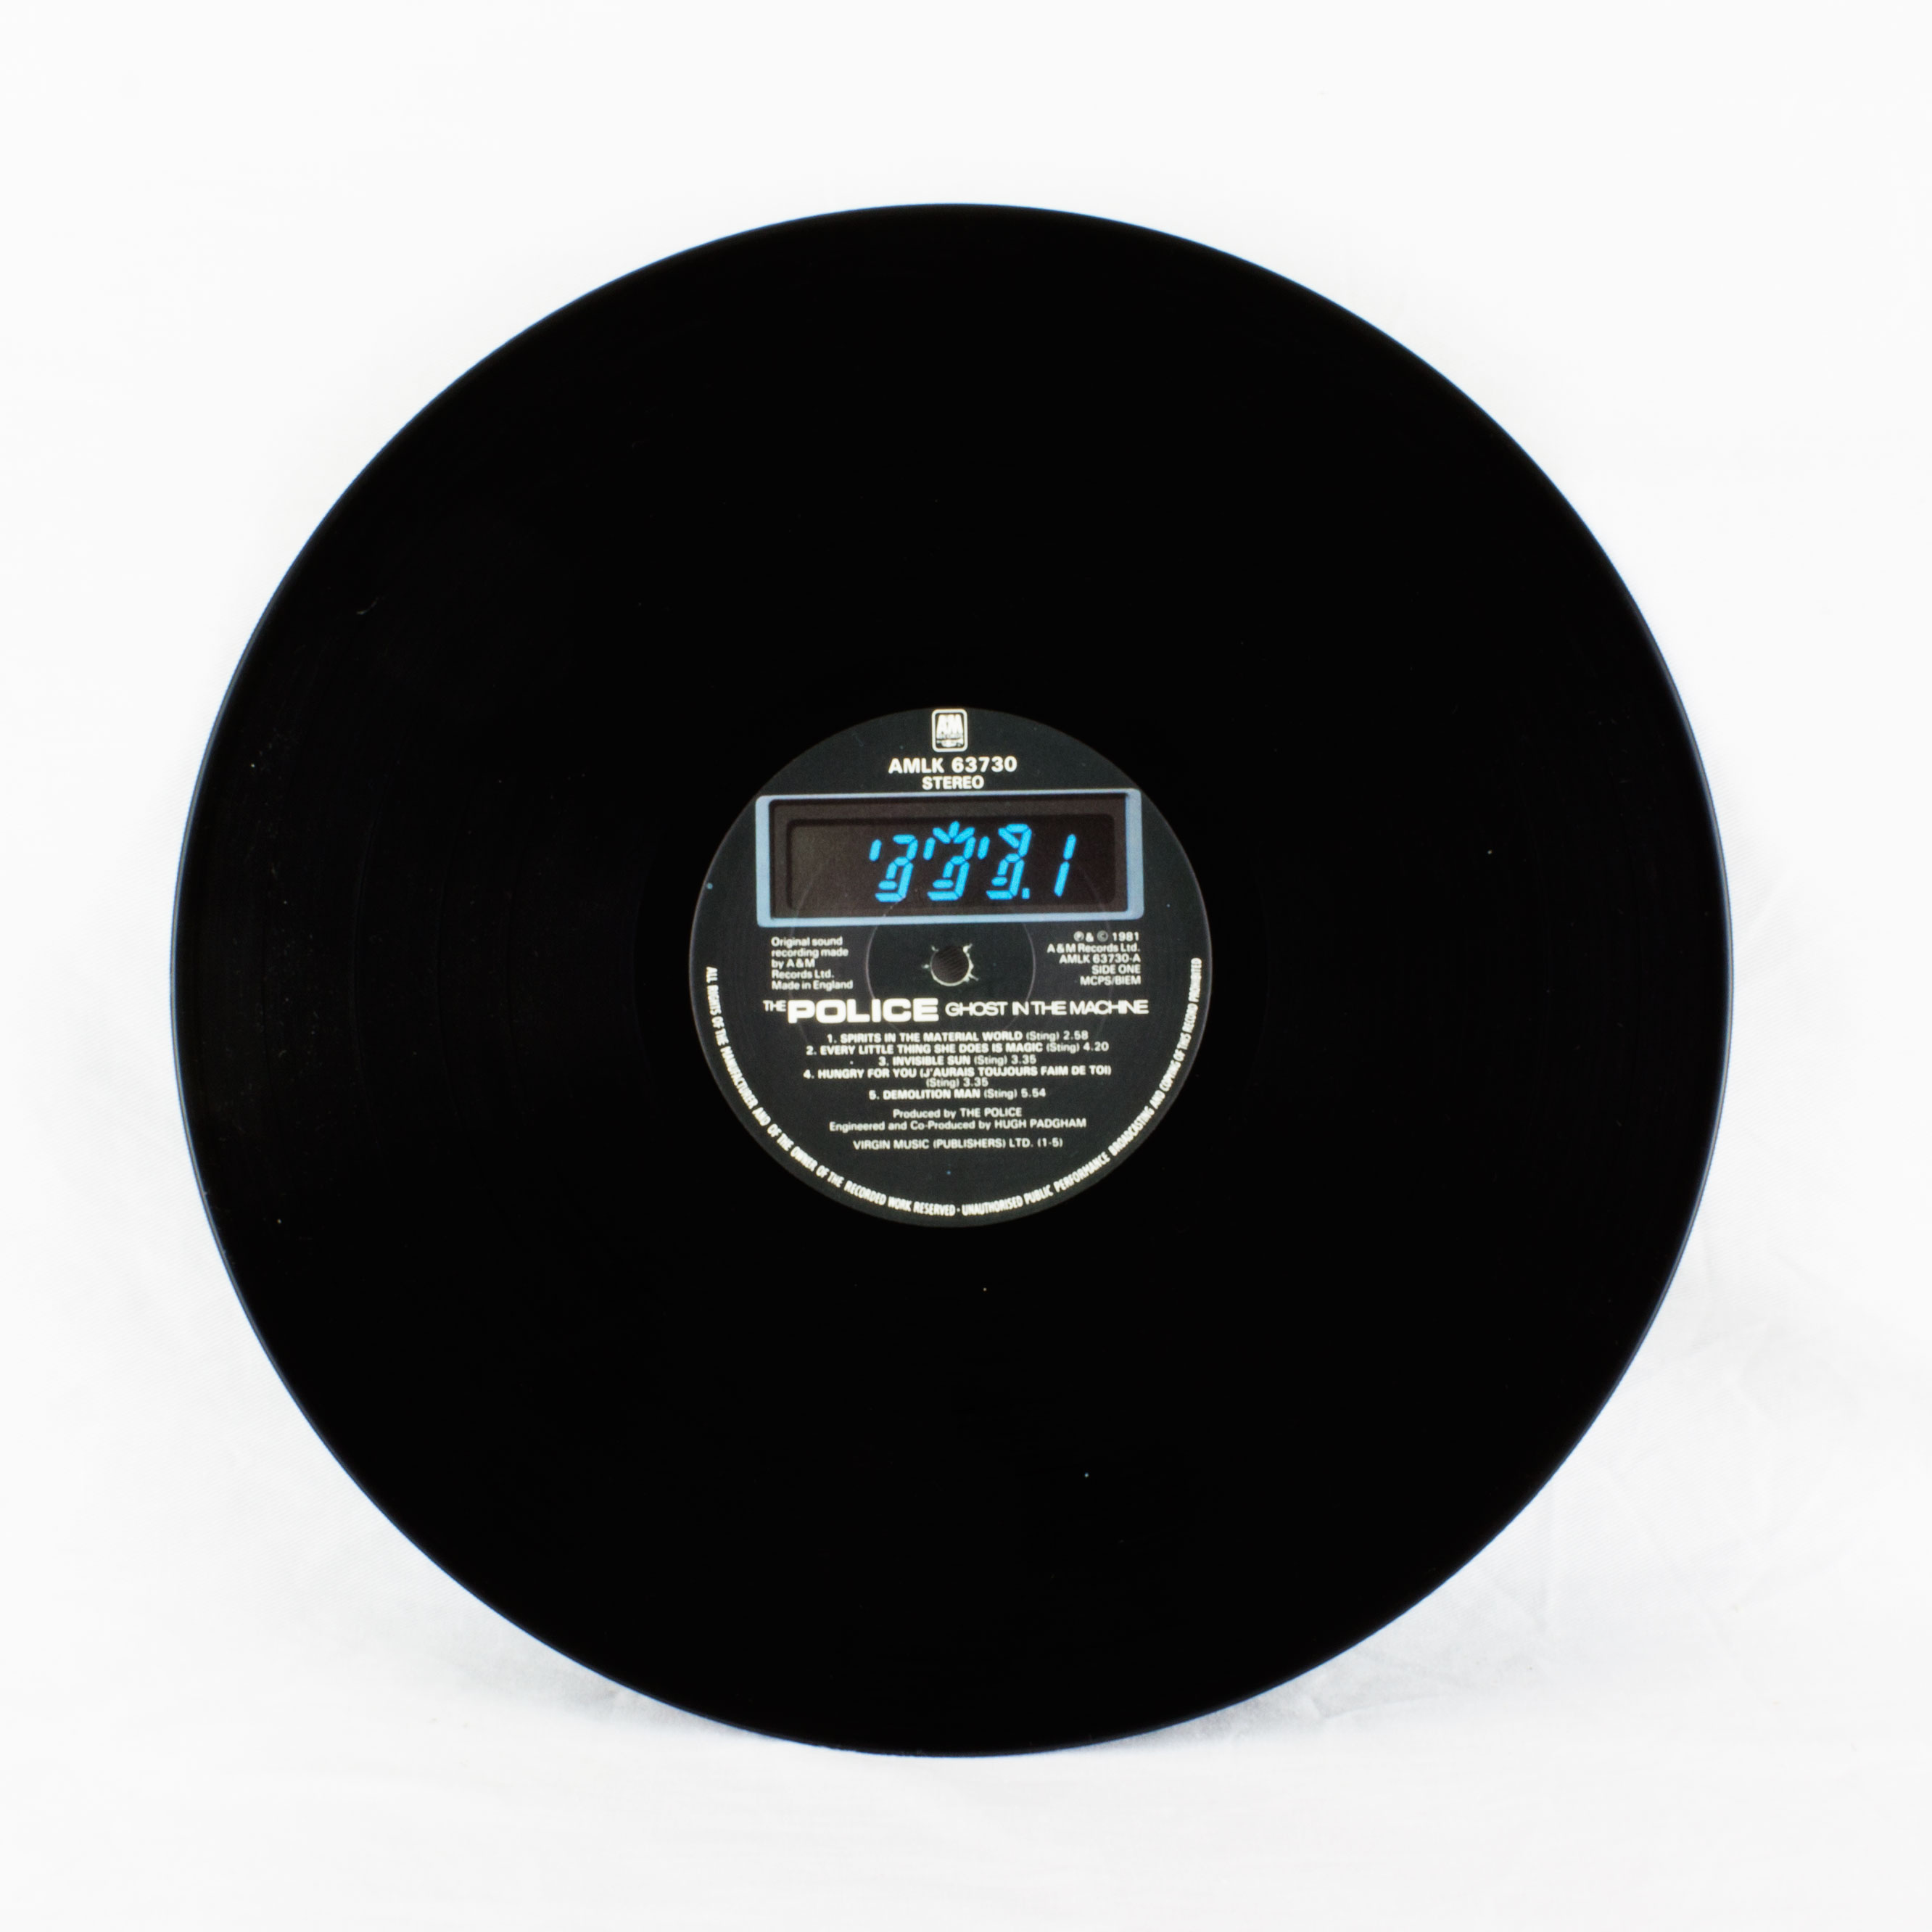 the ghost in the machine vinyl